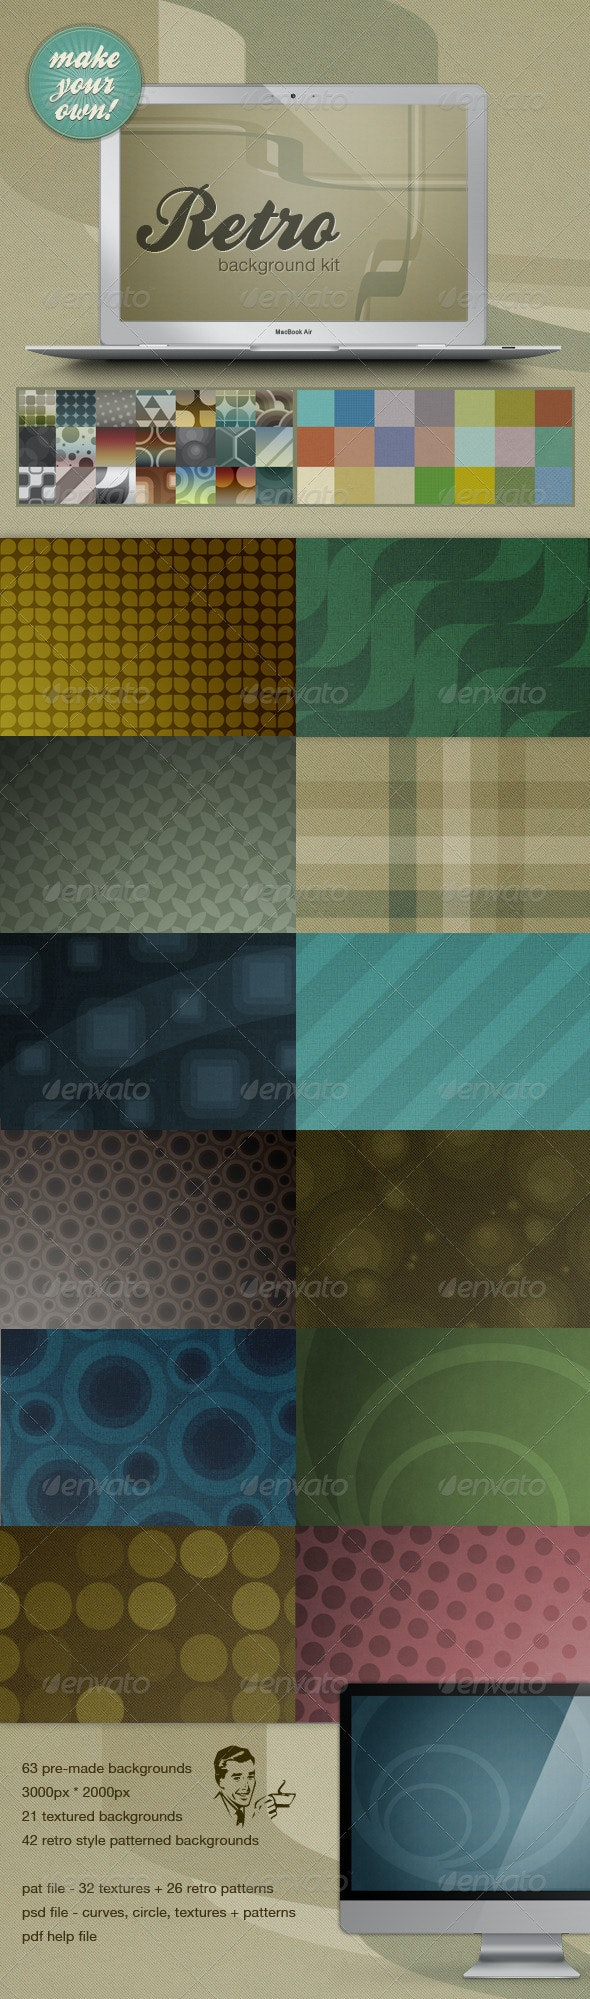 Retro Web Background Kit - Make Your Own! - Backgrounds Graphics